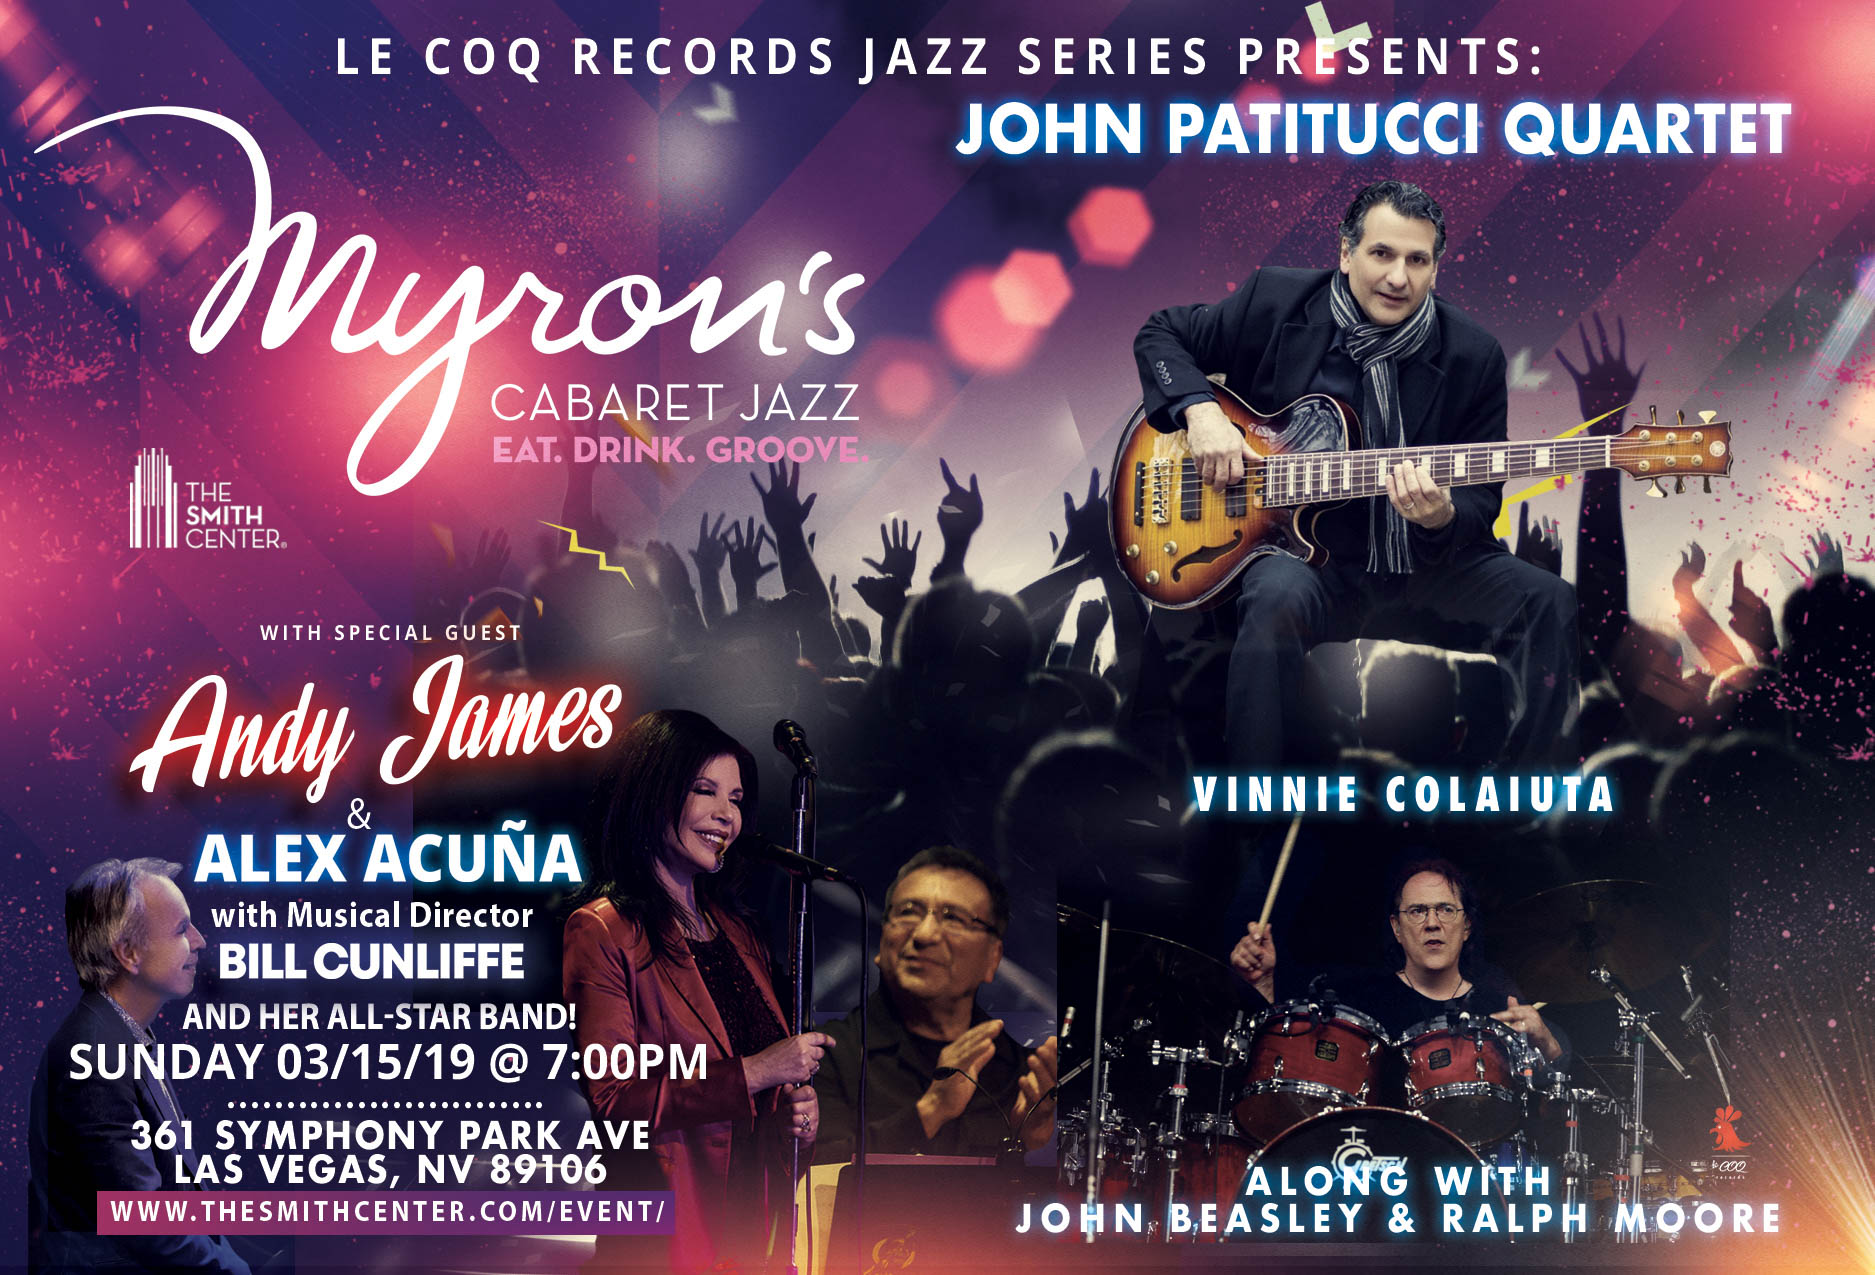 Le Coq Records Presents: John Patitucci Quartet with Special Guest Andy James & Alex Acuña